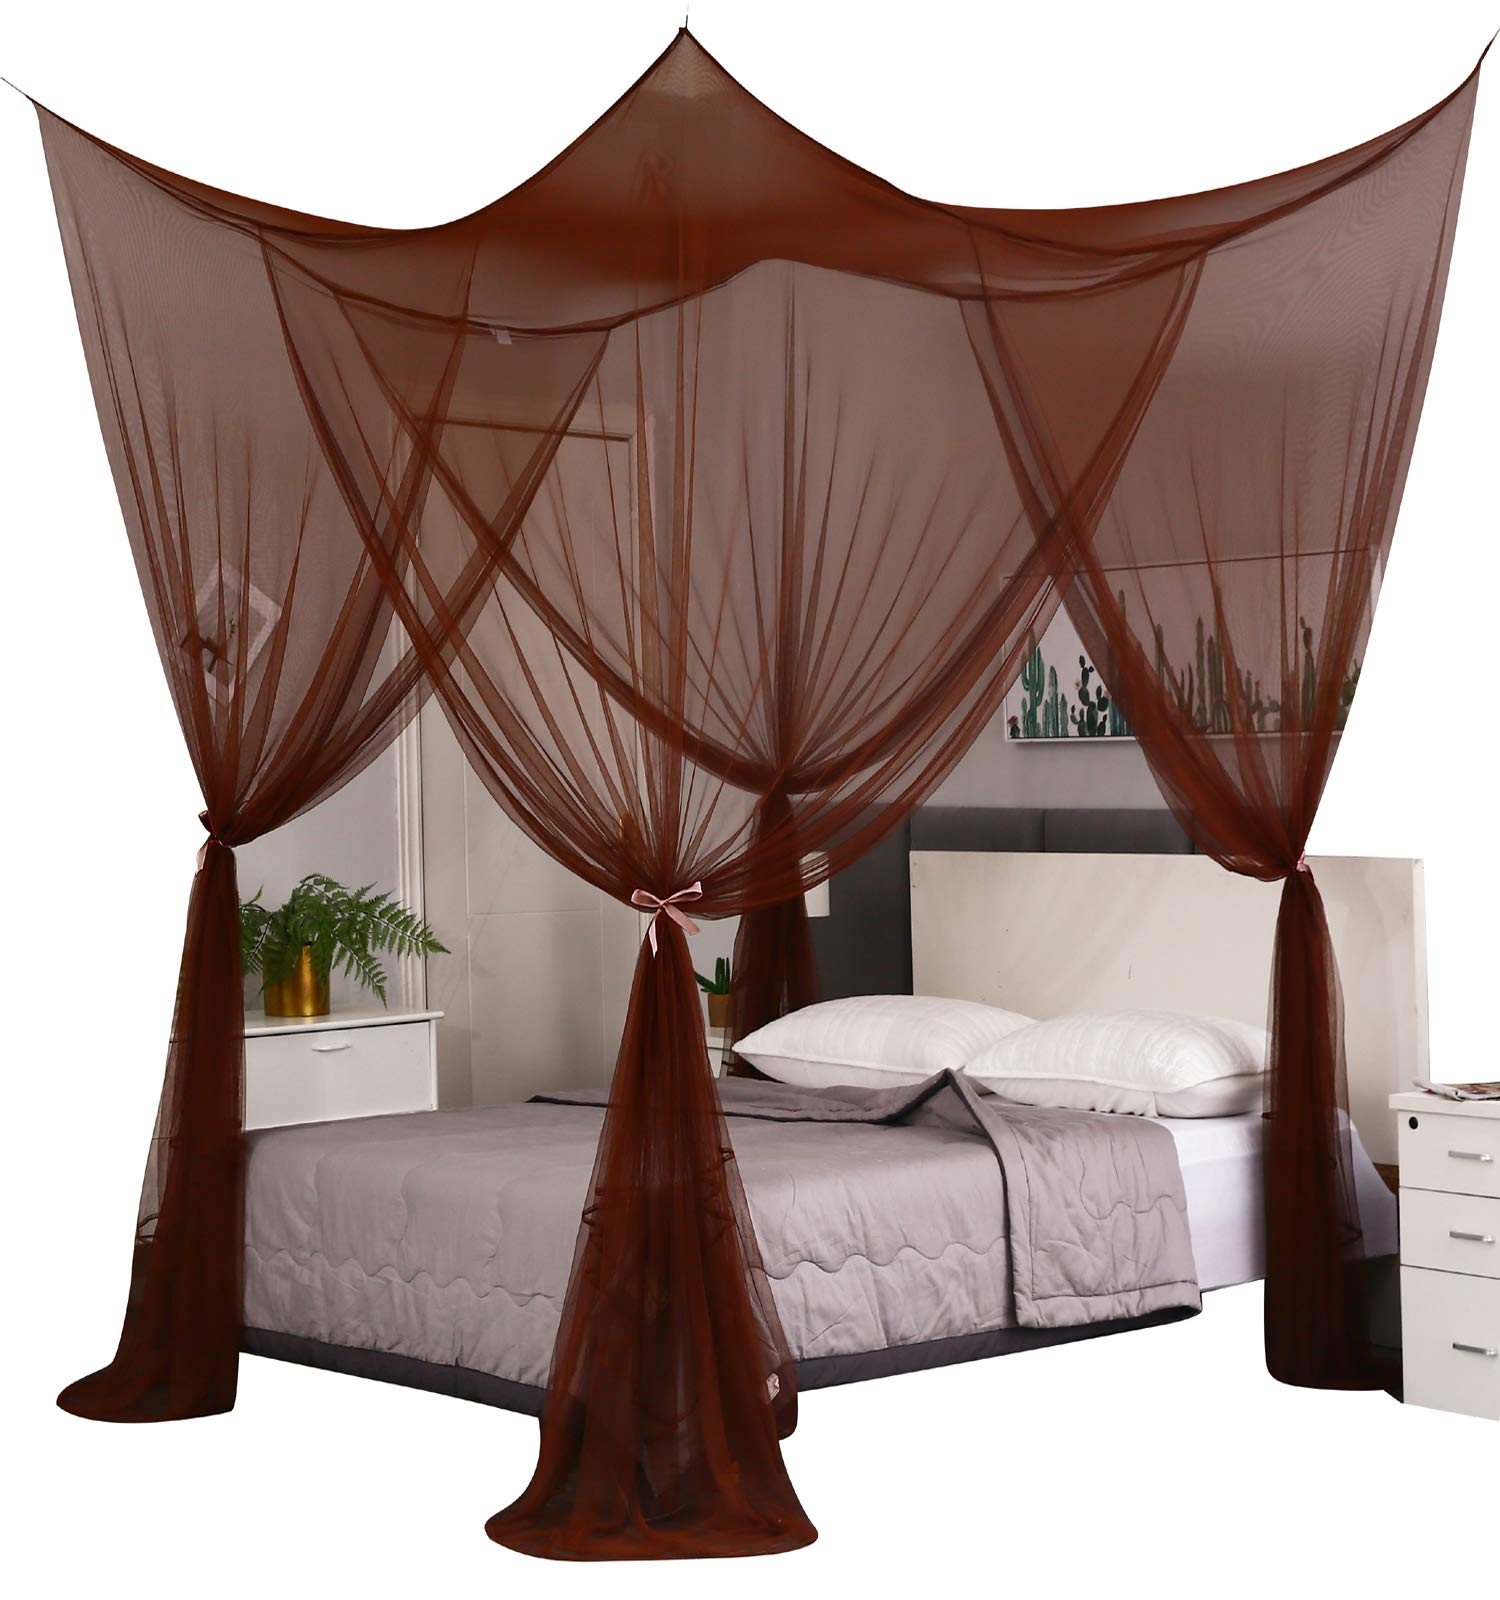 Mengersi 4 Corner Post Elegant Mosquito Net Curtain Bed Canopy for Full Queen King Bed,Suitable for Indoor Outdoor Net(Coffee, L87xW79xH98 inch)